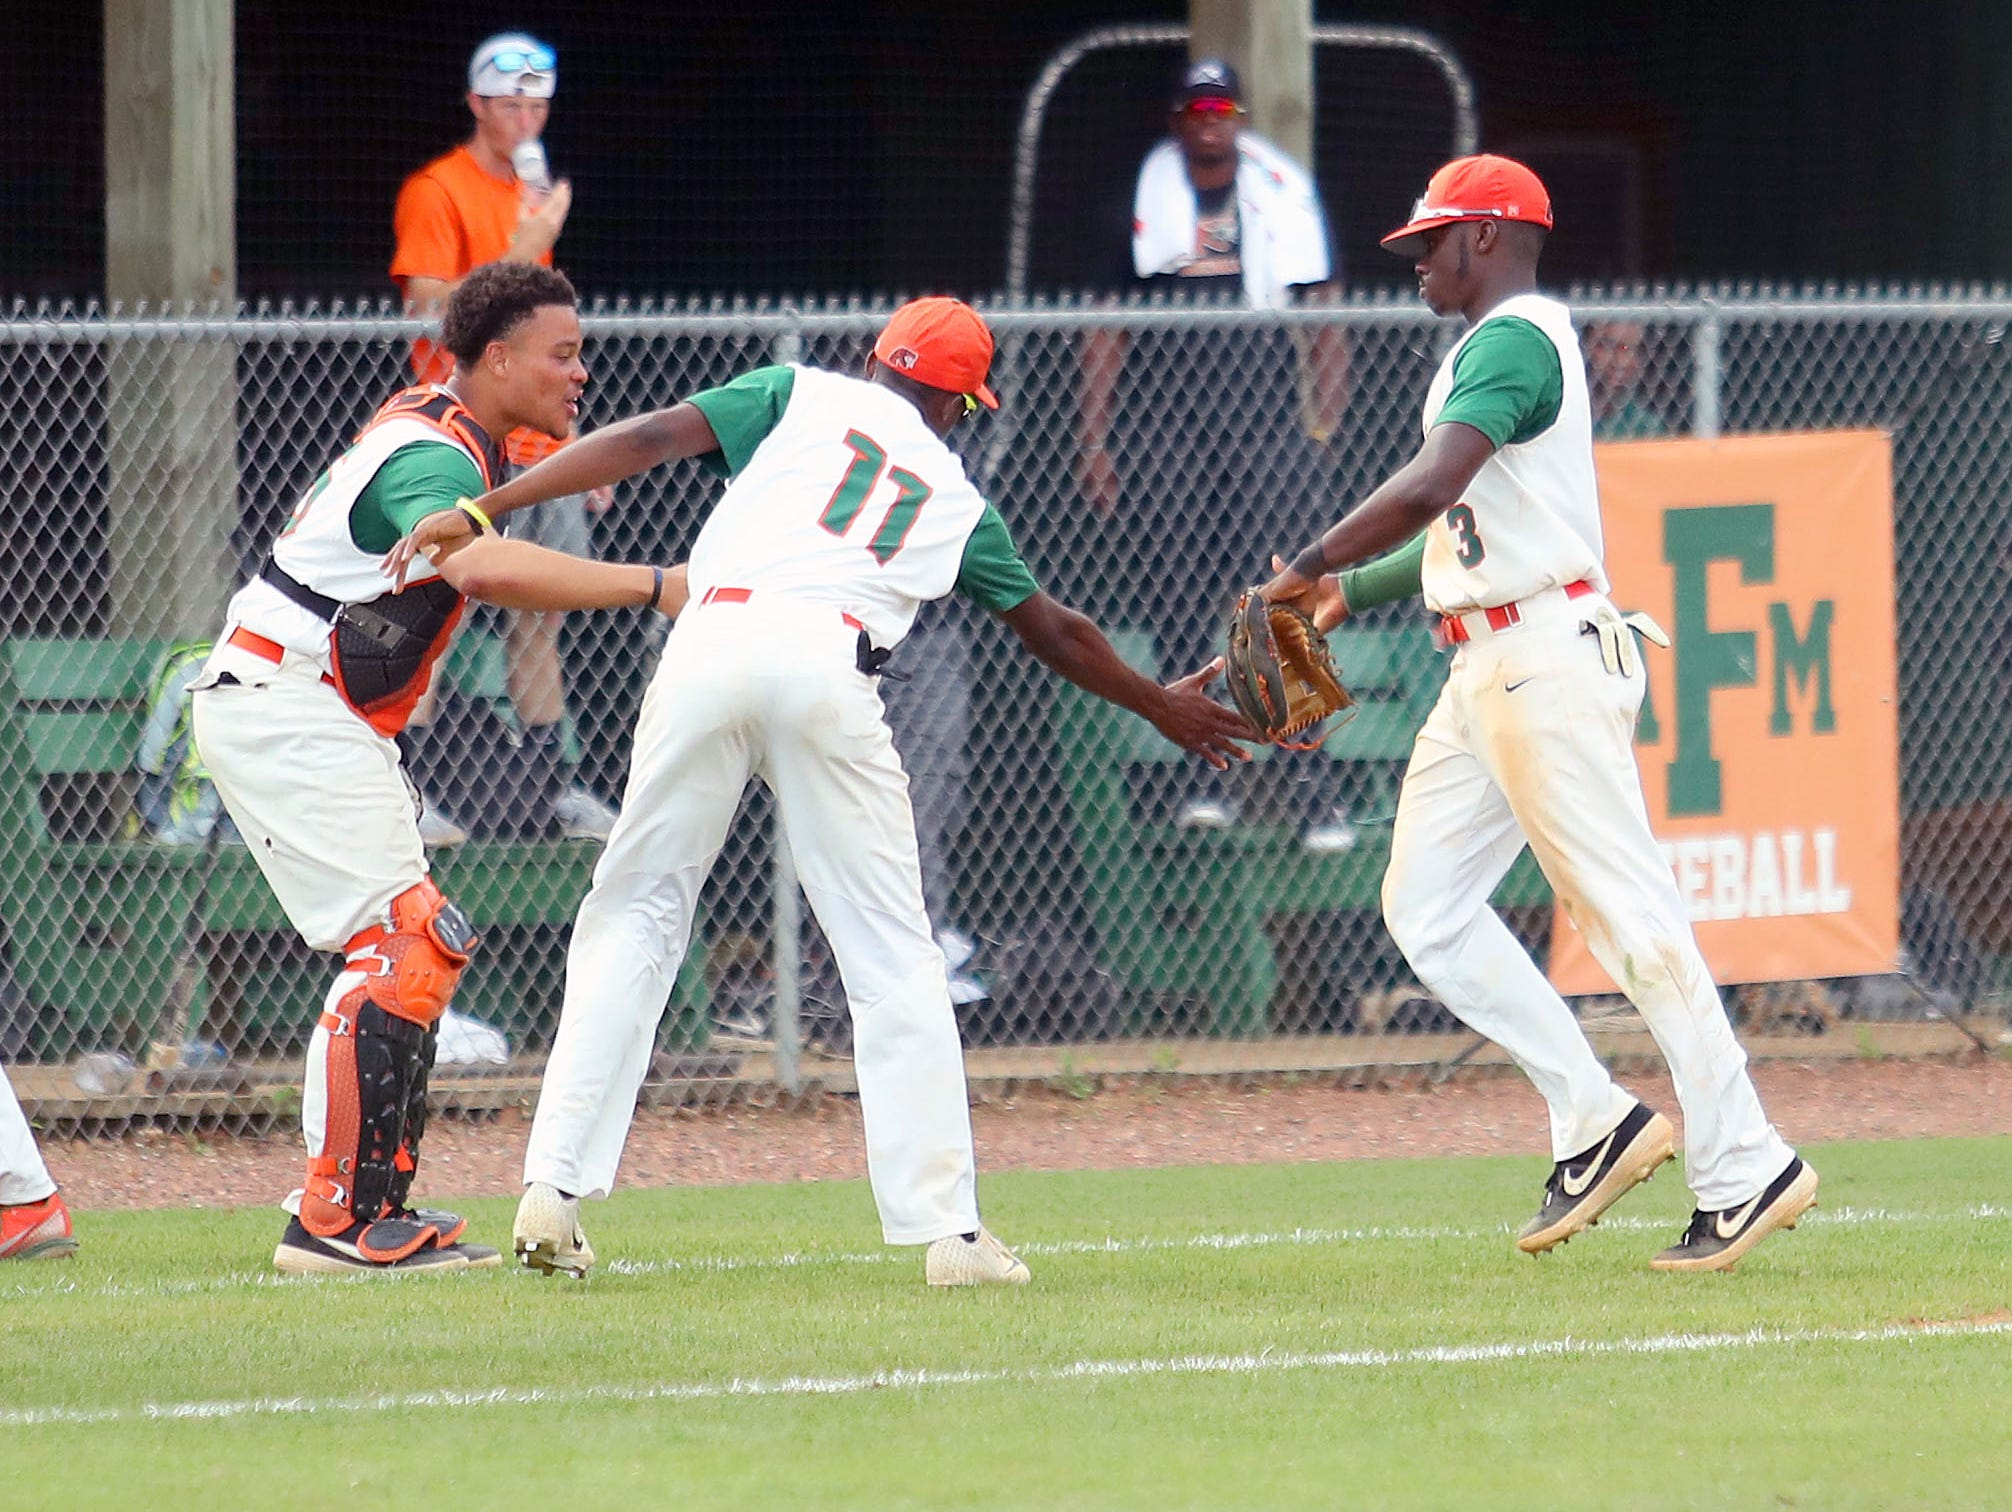 FAMU shortstop Robert Robinson (left) celebrates with teammates between innings in Game 2 of a doubleheader versus B-CU on Saturday, April 13, 2019.